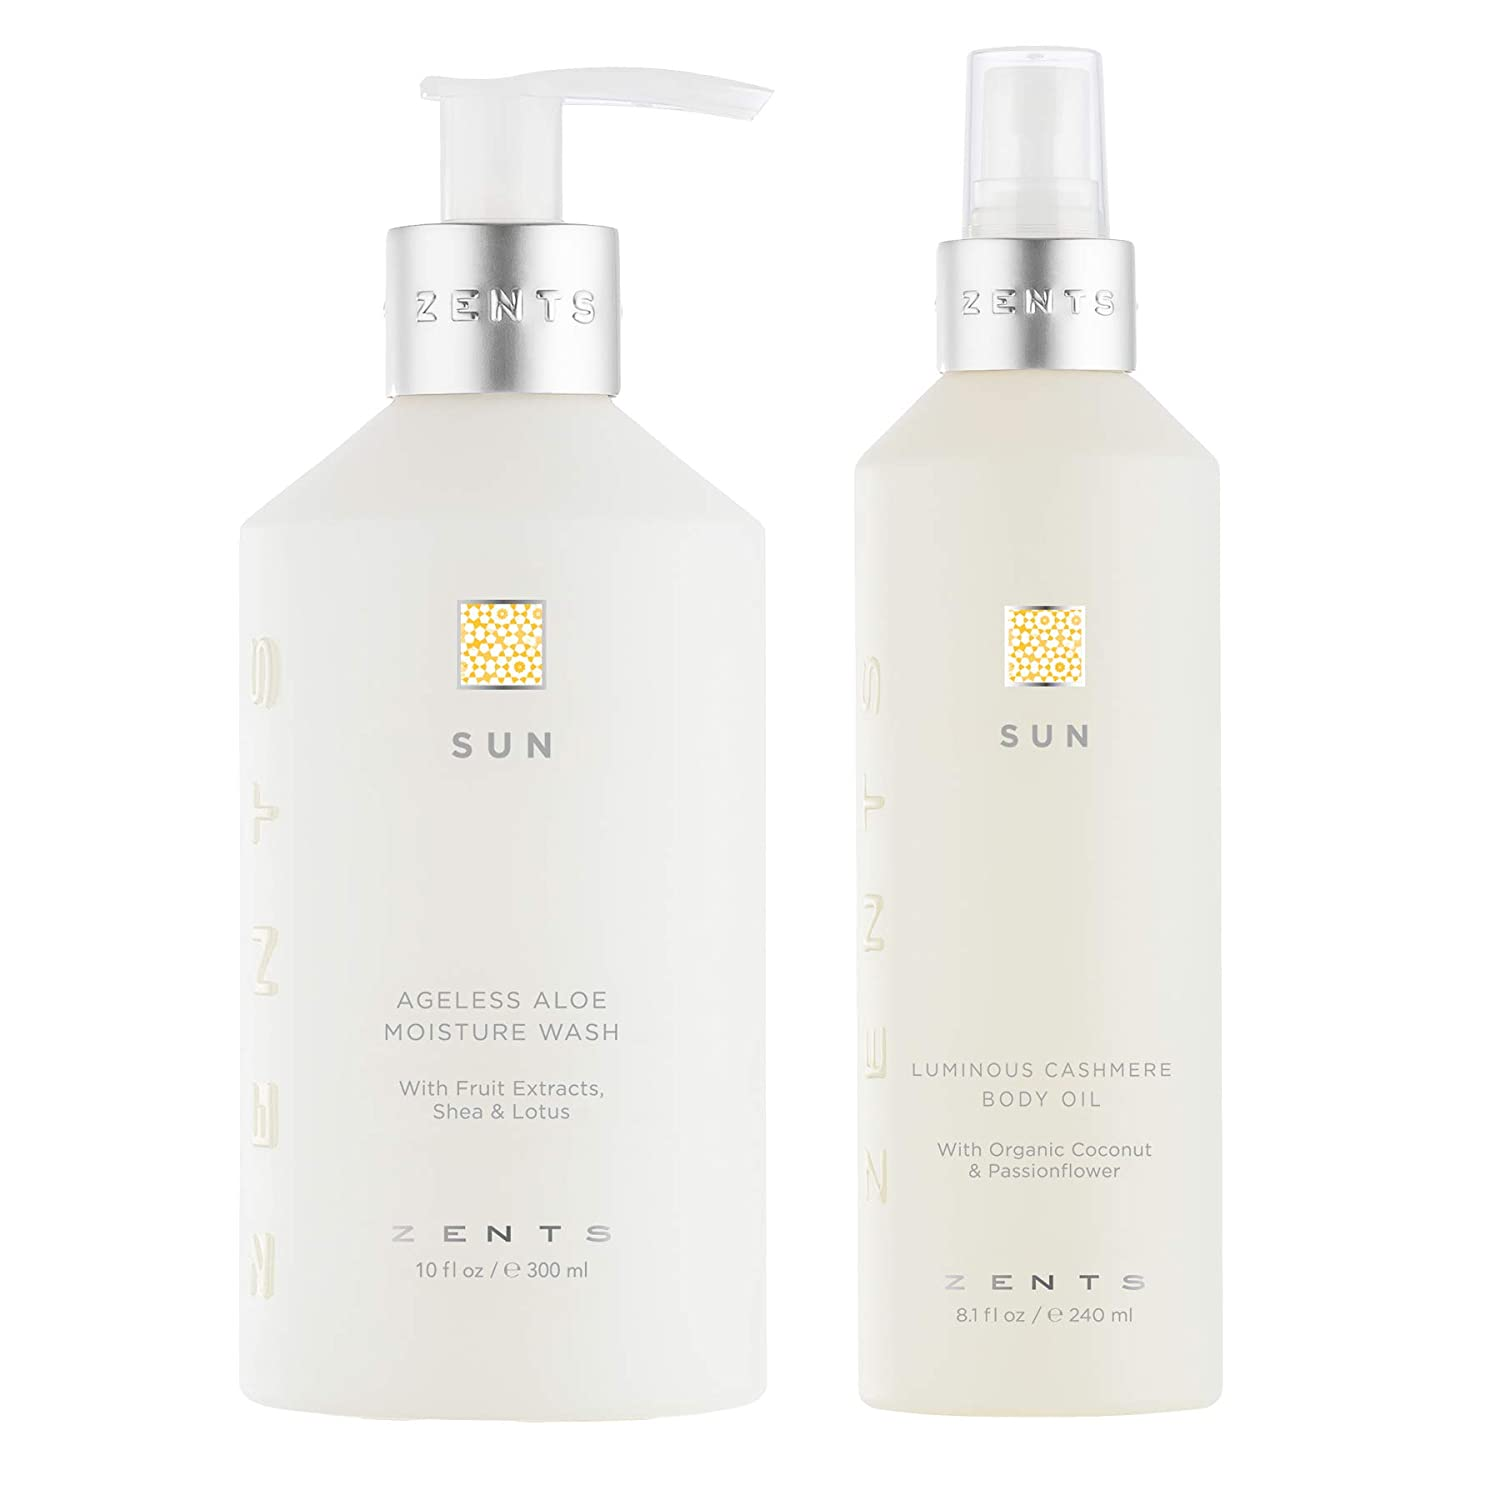 Zents Body Wash and Cashmere Oil Set, Ageless Aloe Moisture Body and Hand Wash, Soften and Moisturize Skin with Vitamin E and Organic Coconut Oil, Cleanse, Moisturize and Nourish Dry Skin